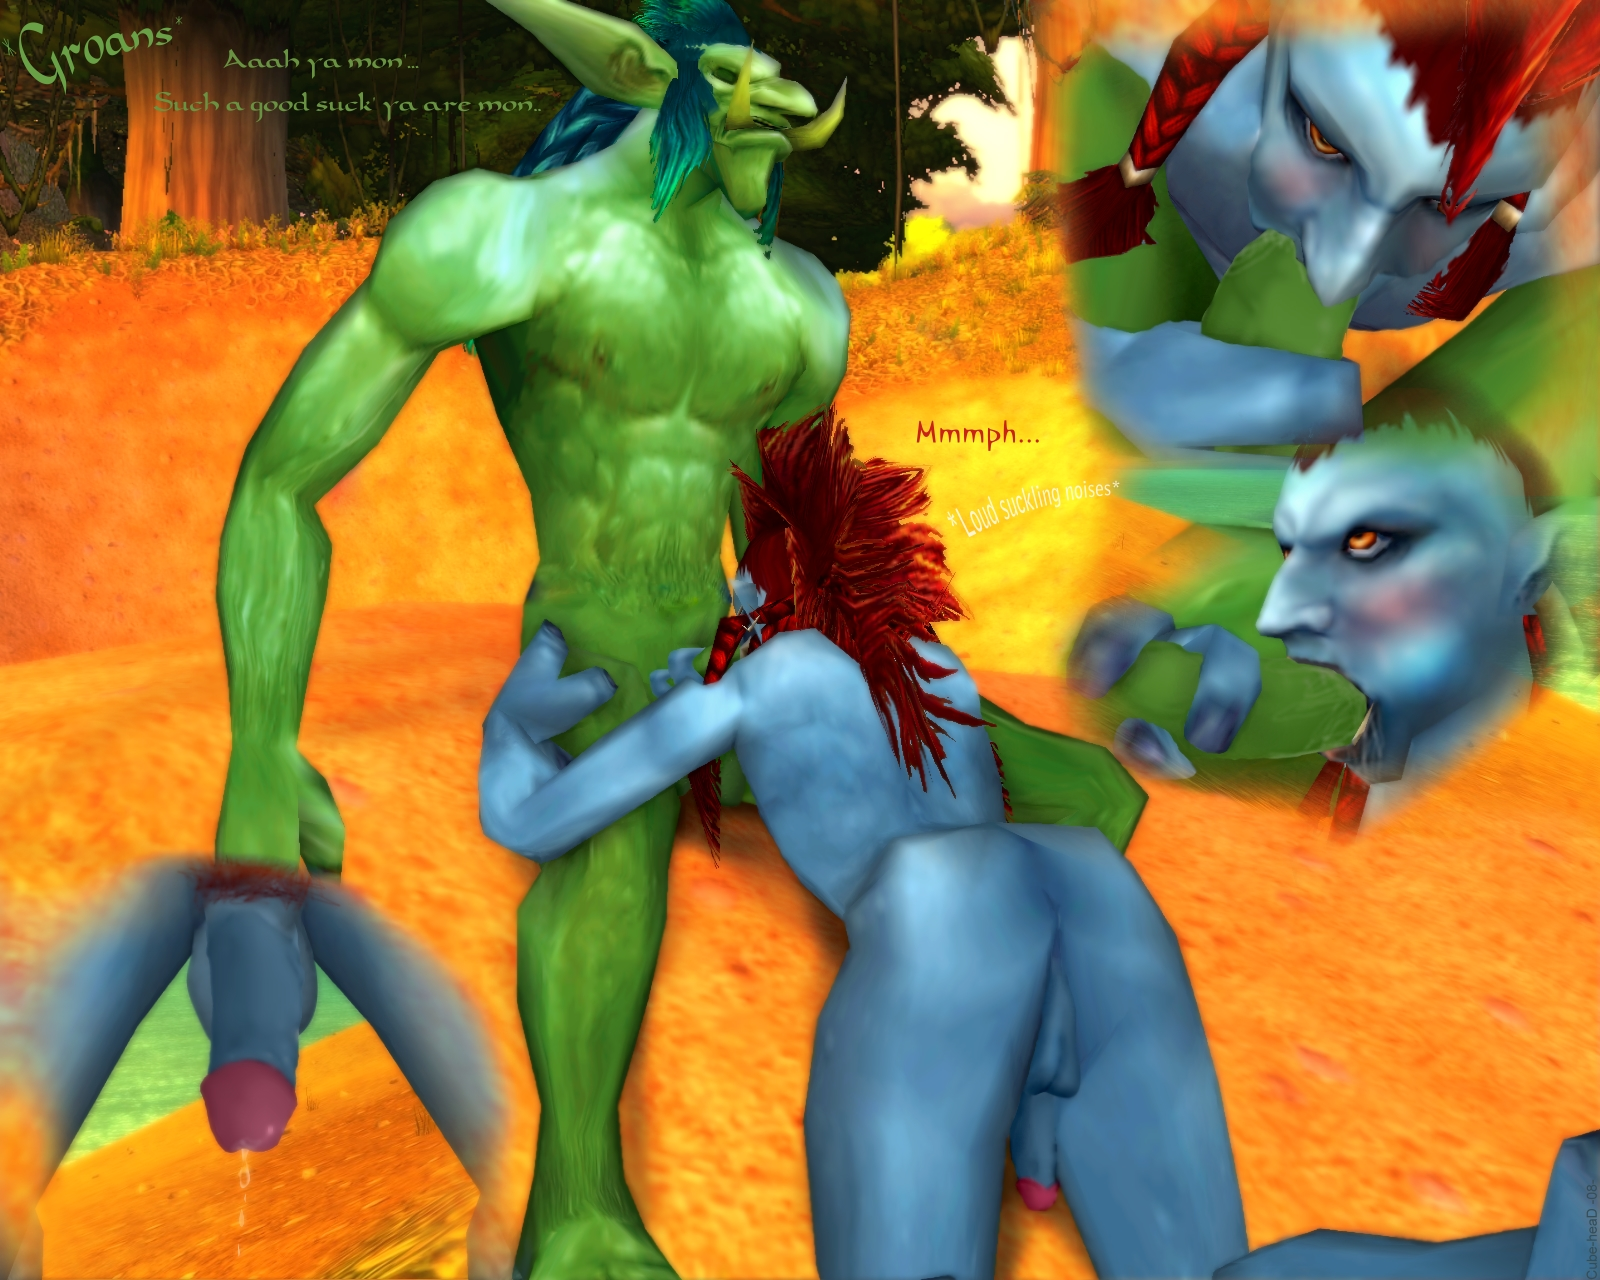 Warcraft jizz art erotica scenes